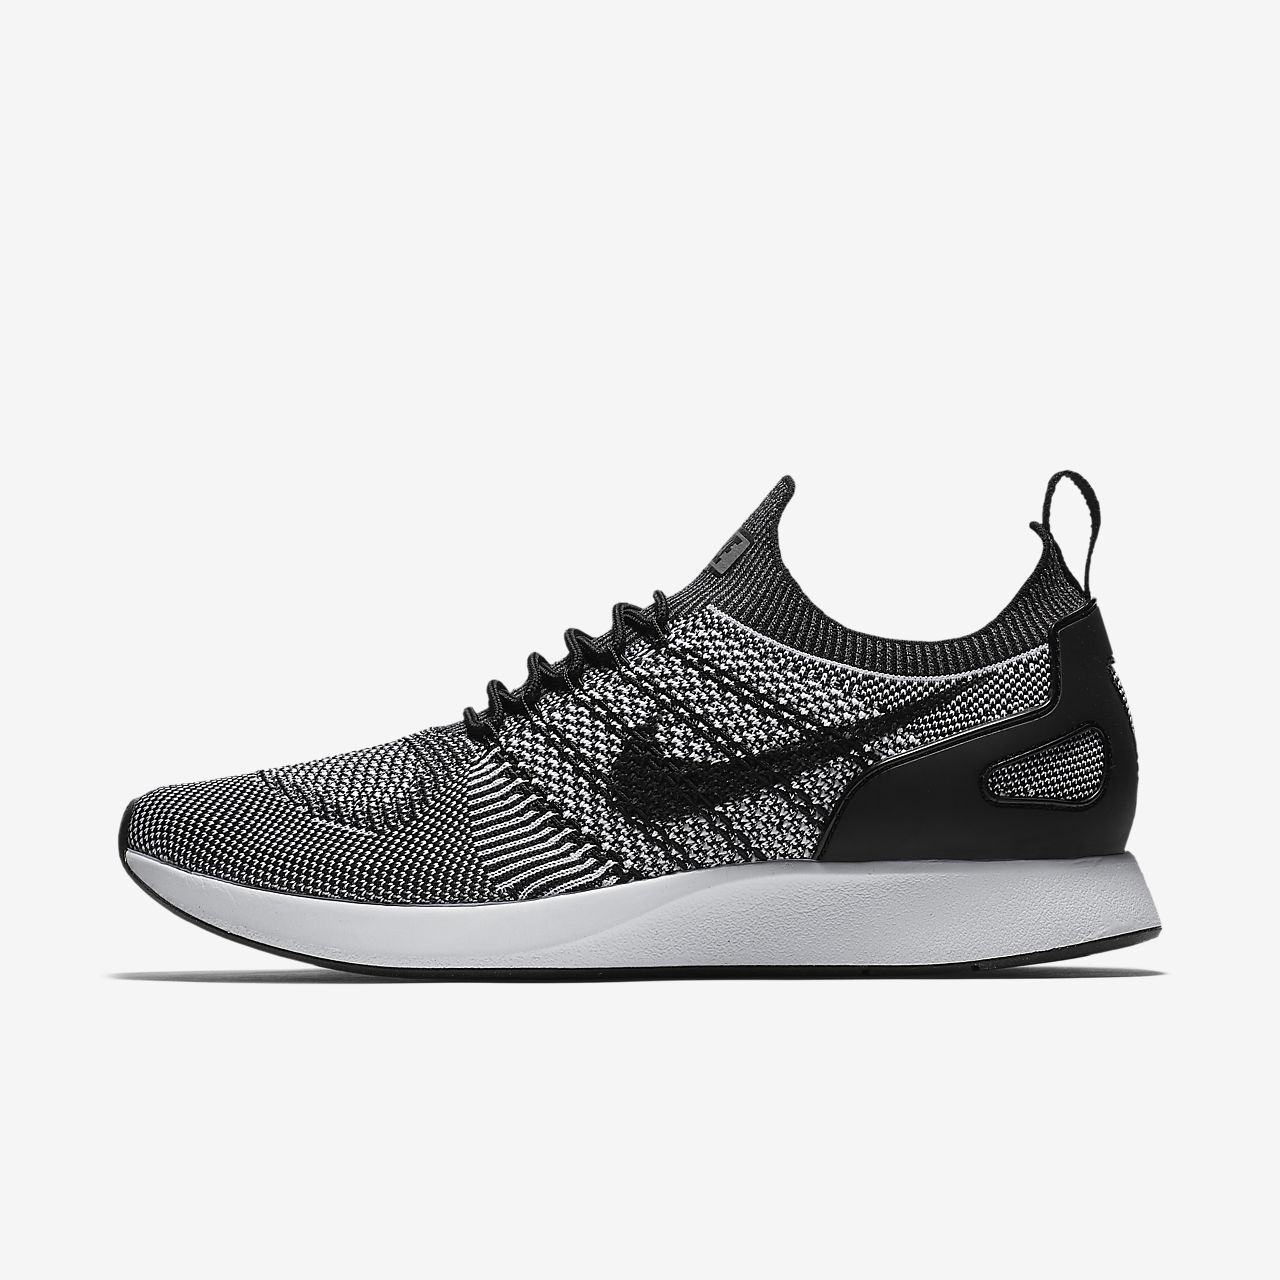 online store aac21 9c908 ... Nike Air Zoom Mariah Flyknit Racer Men s Shoe